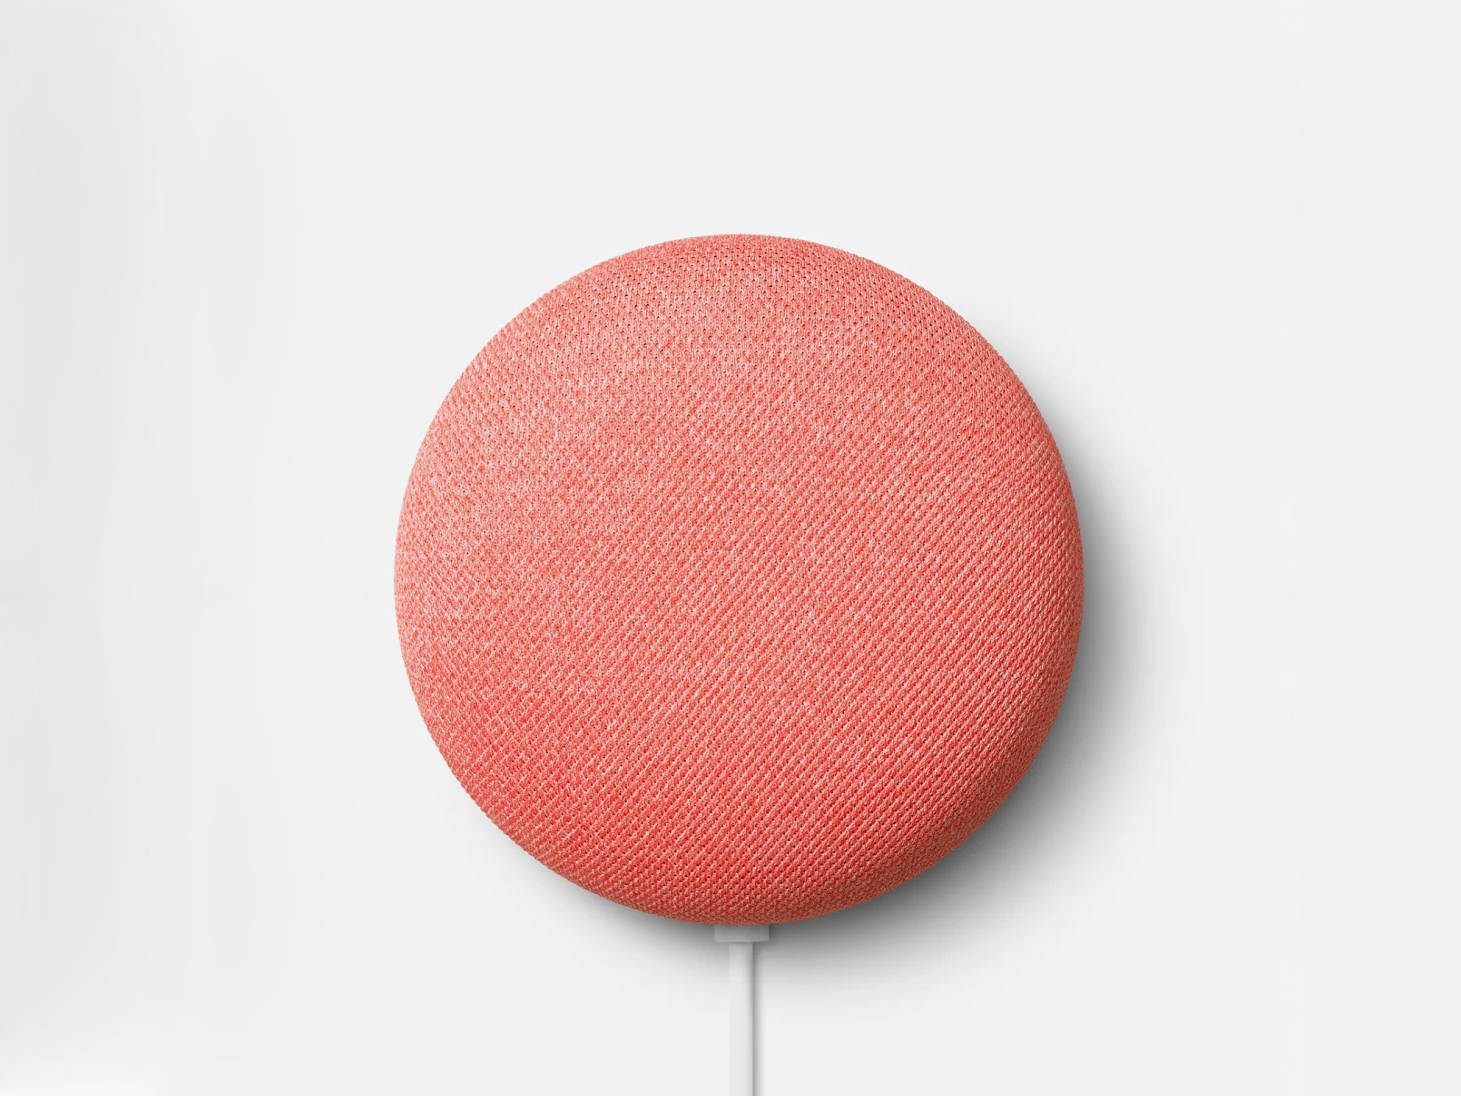 a pink round nest mini speaker on white background